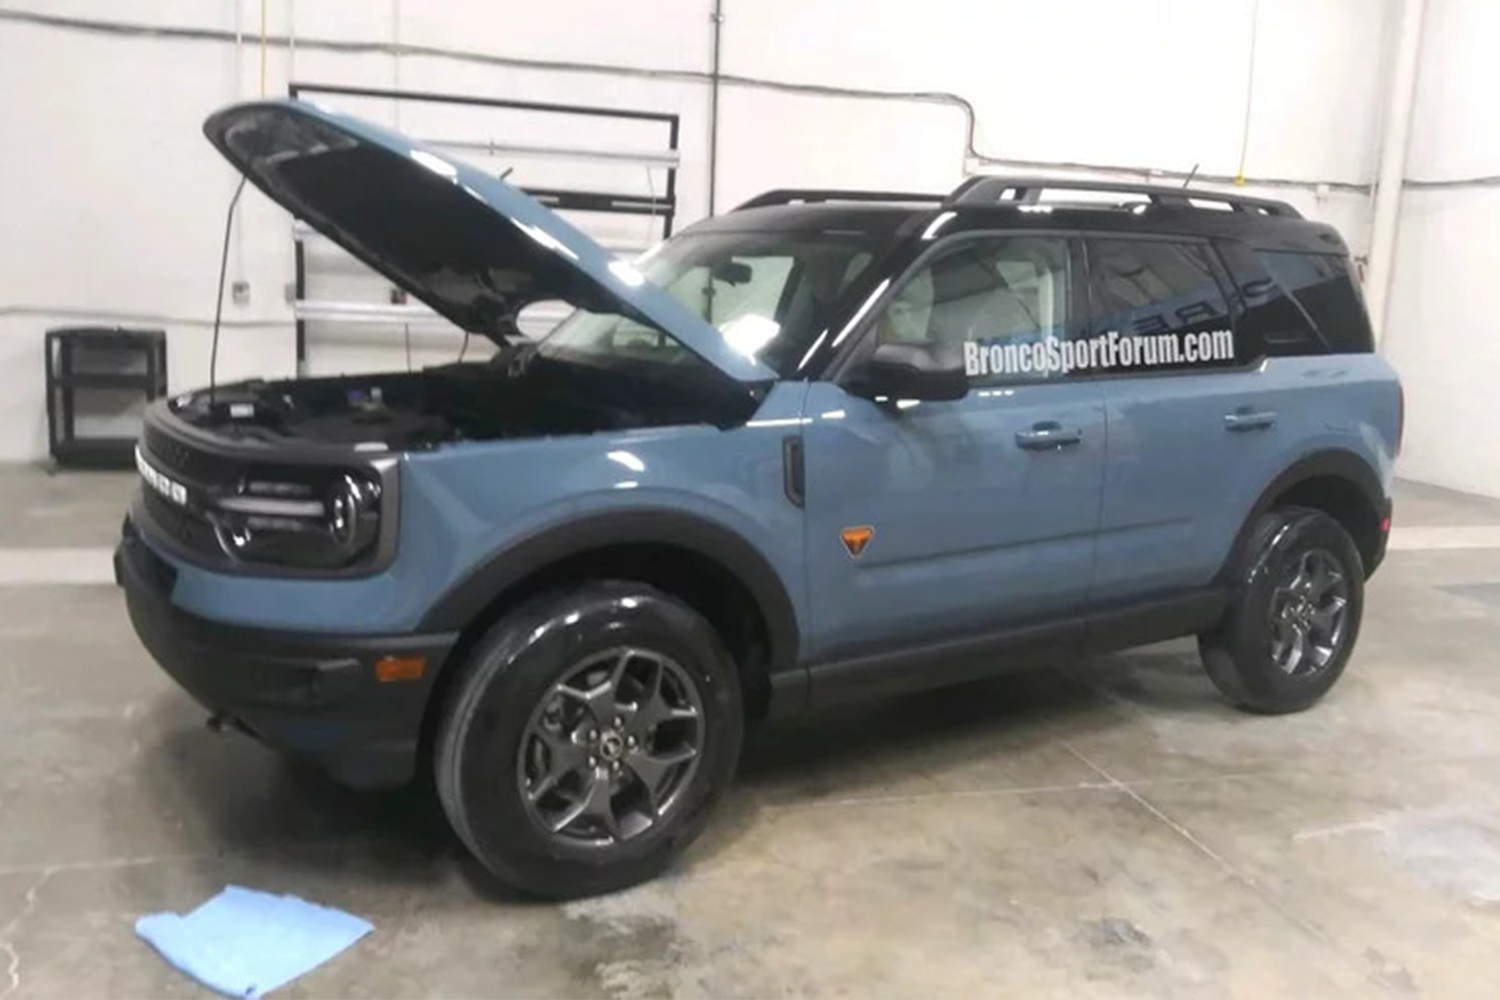 Leaked blue Ford SUV in a garage